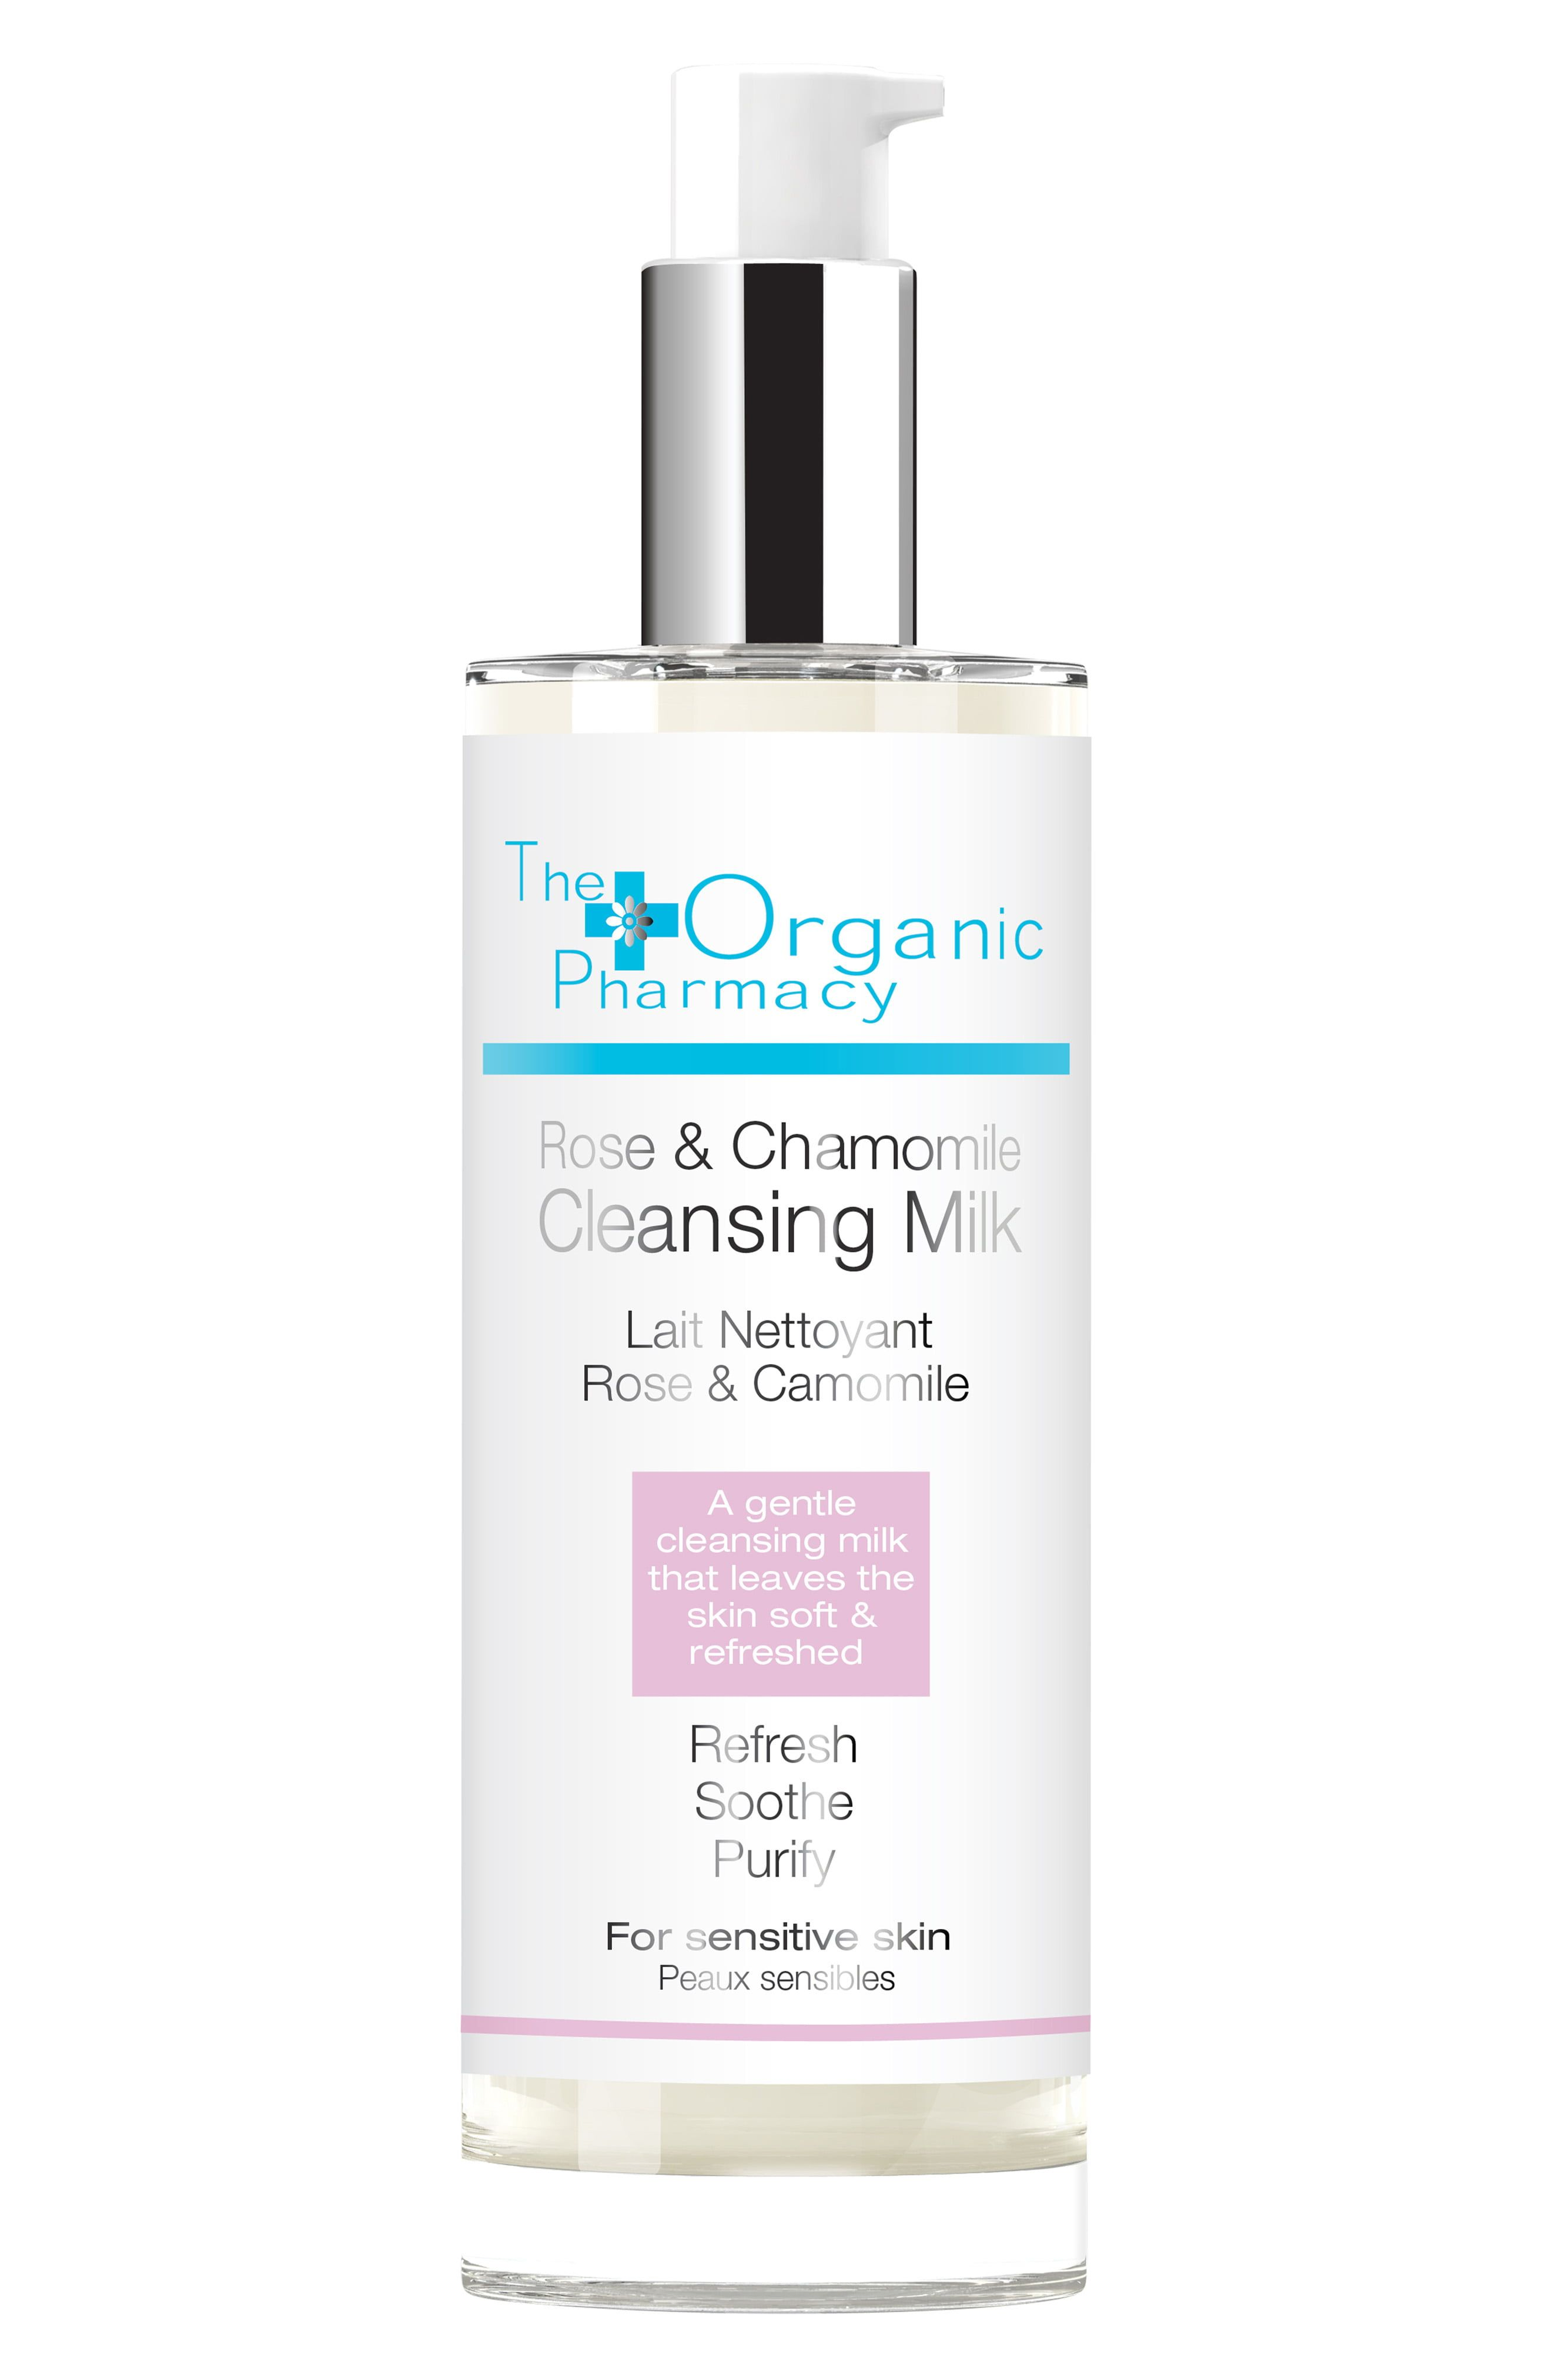 The Organic Pharmacy Rose & Chamomile Cleansing Milk